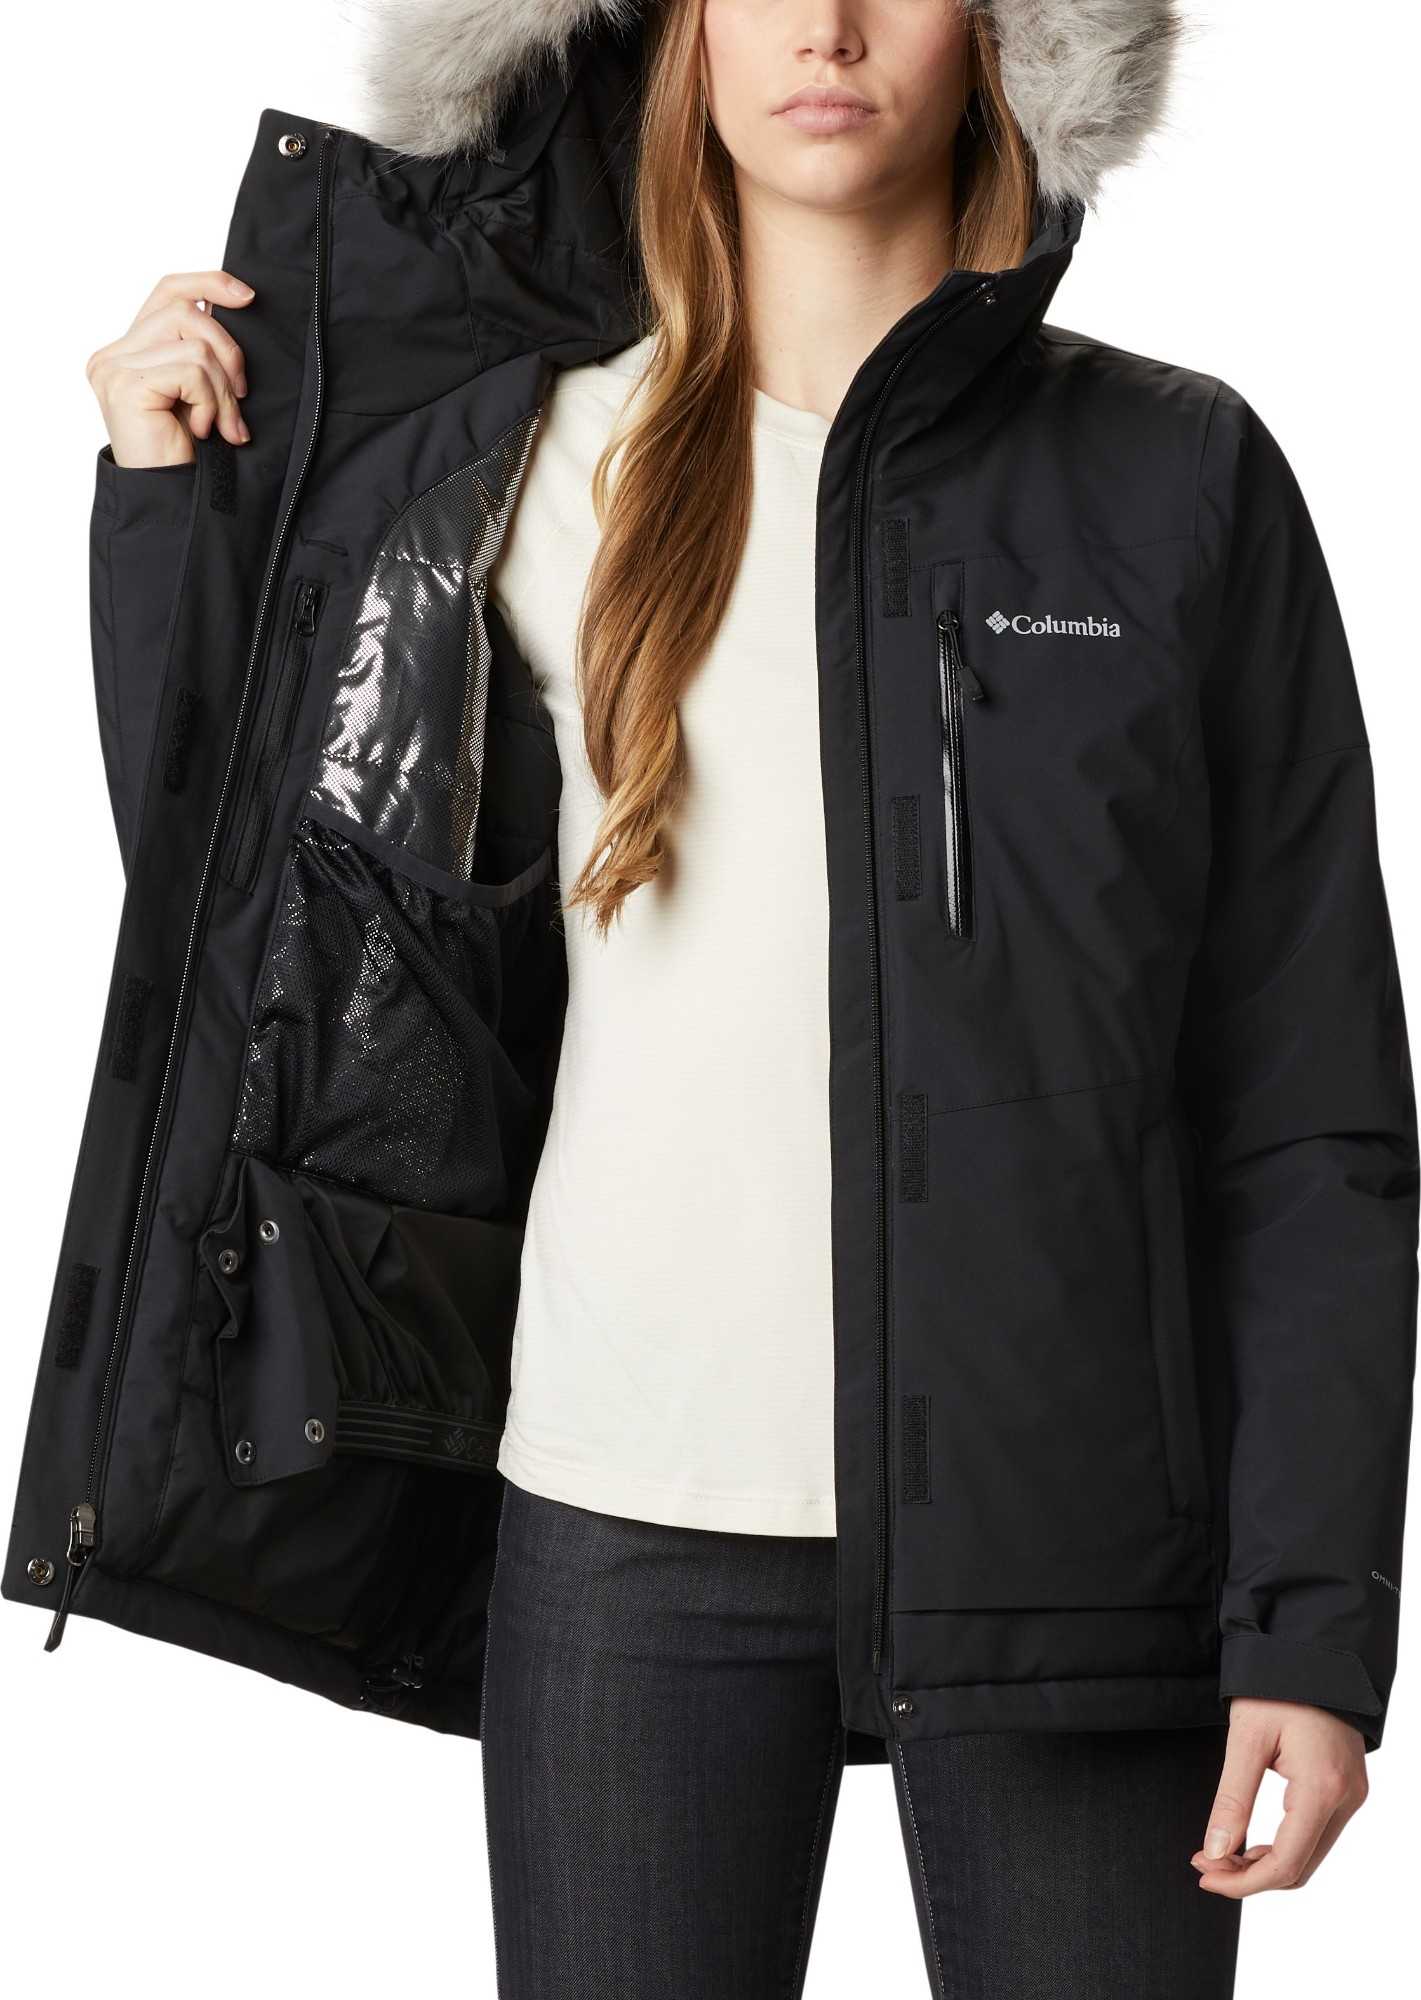 Columbia Ava Alpine Insulated Jacket Women's Black L